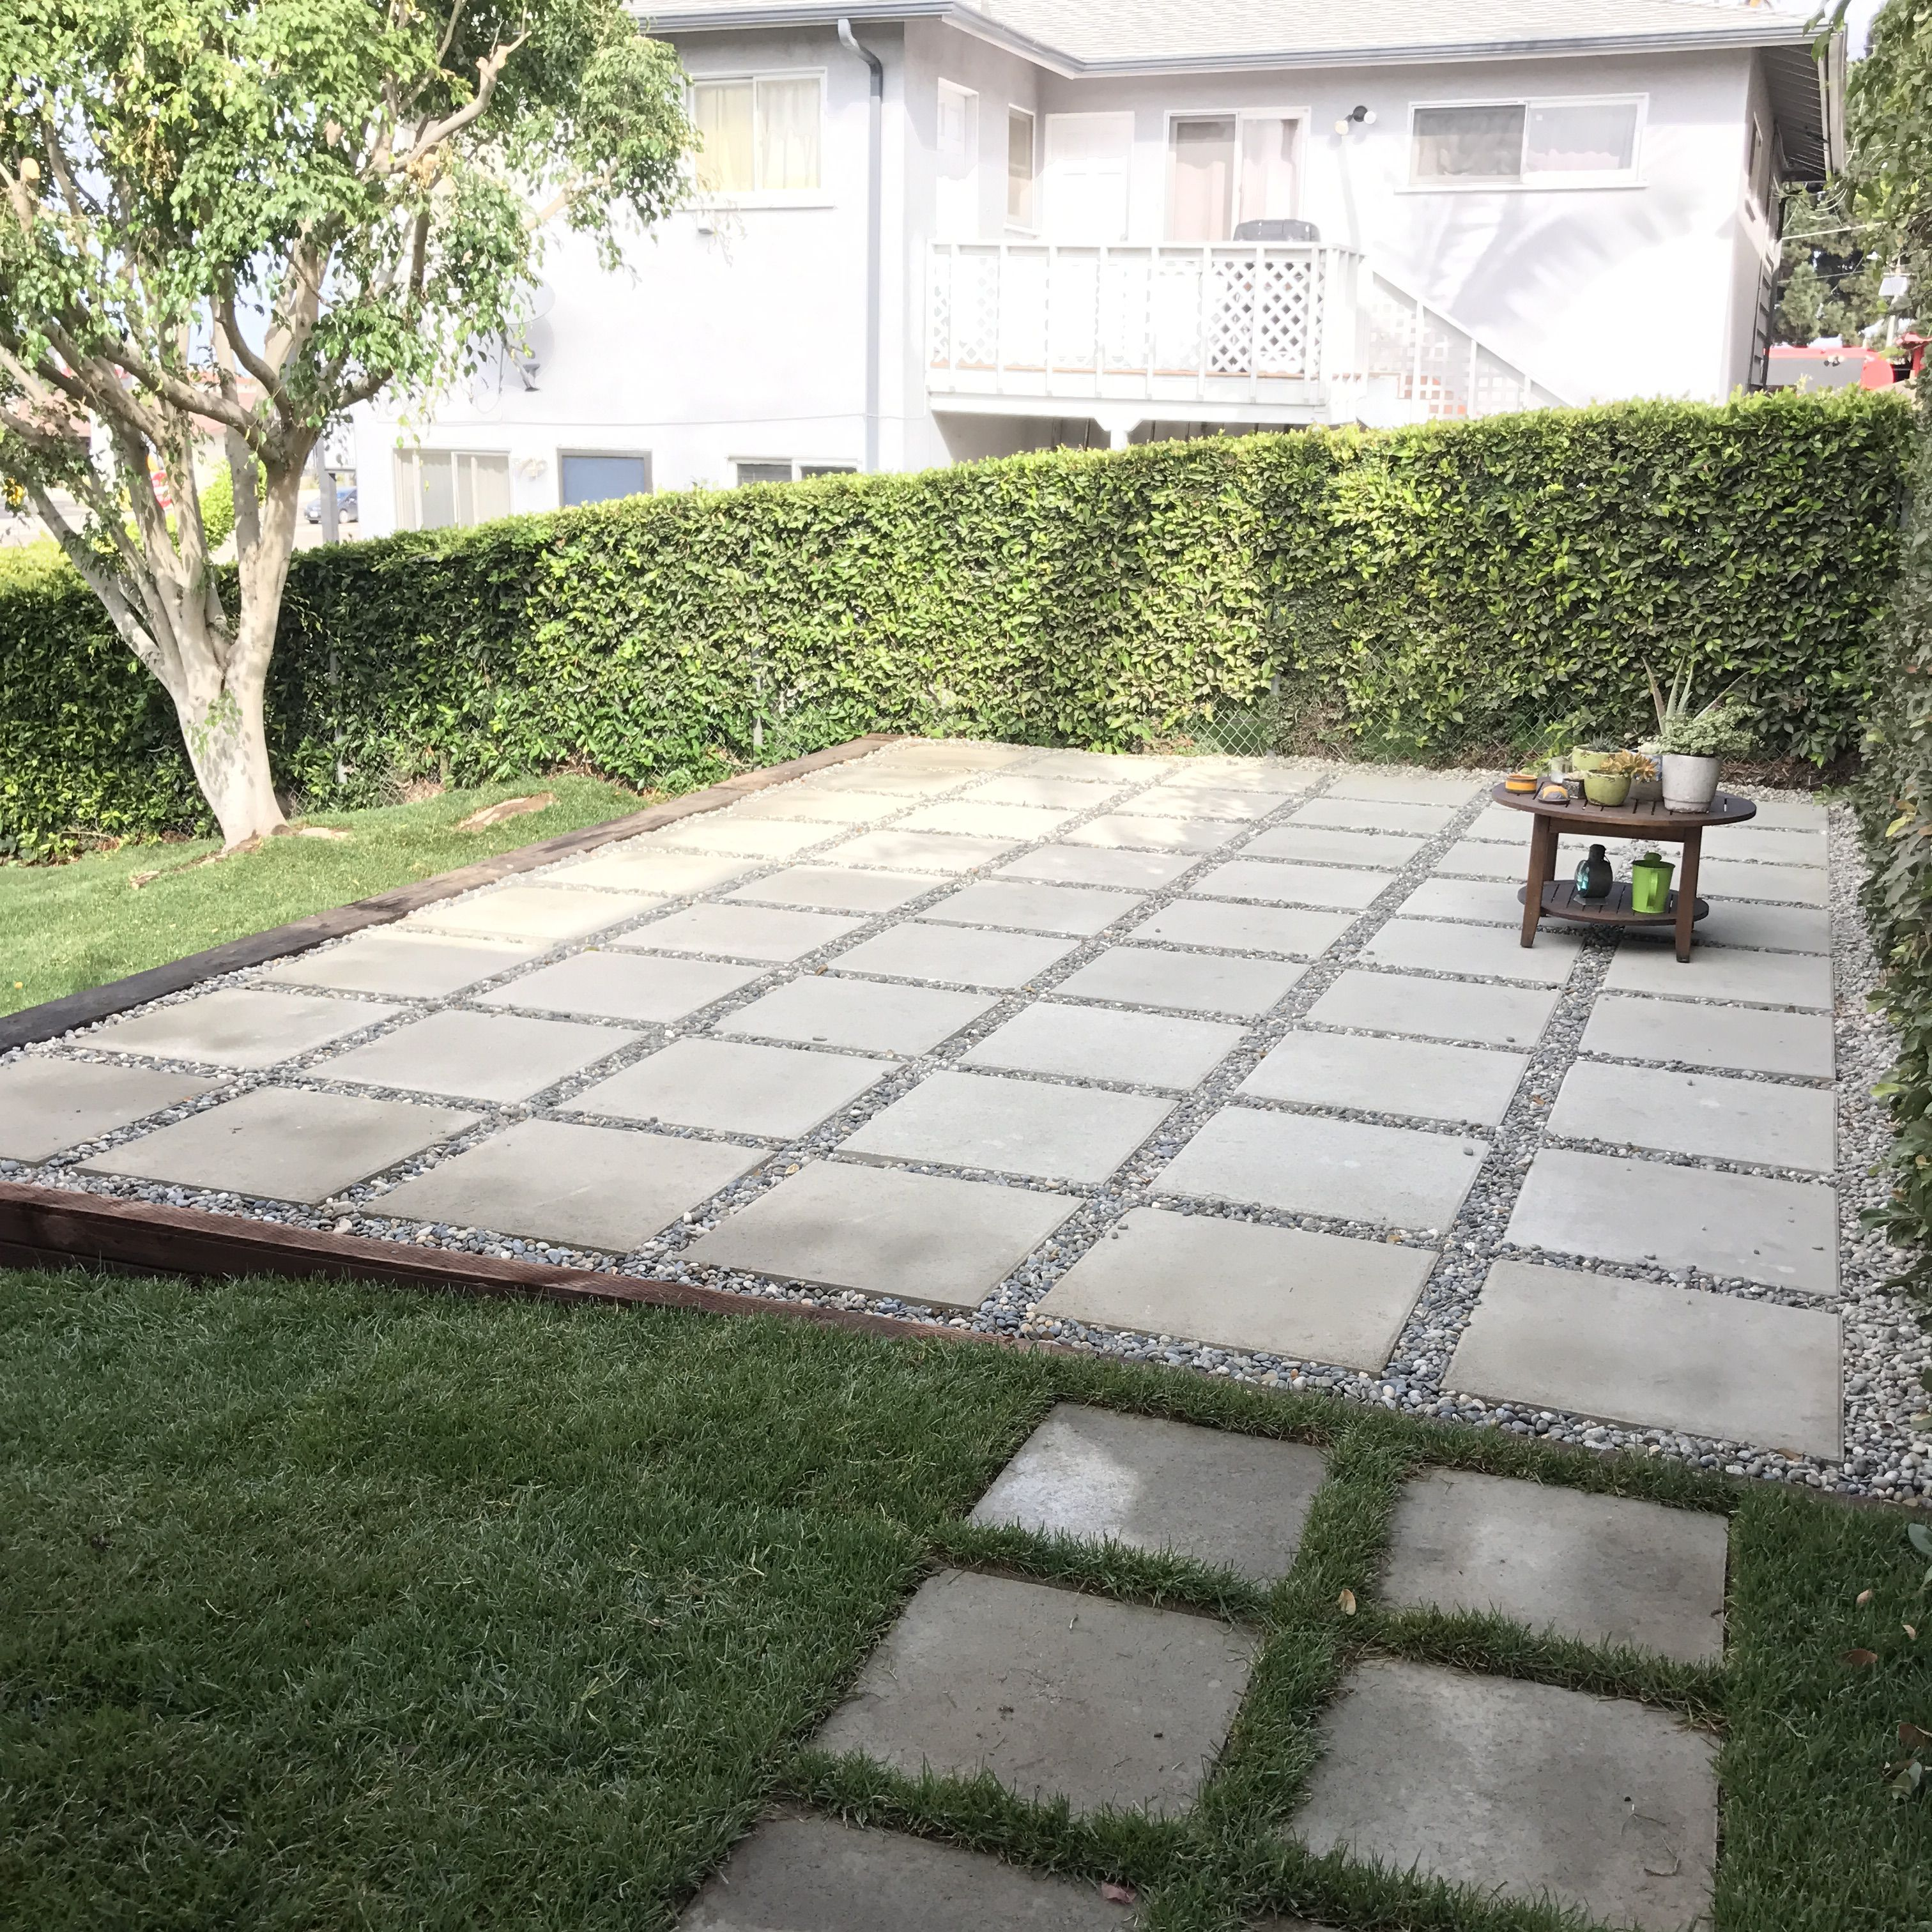 Pavimentos Exteriores Jardin Large Pavers Used To Create Patio In Backyard Quick And